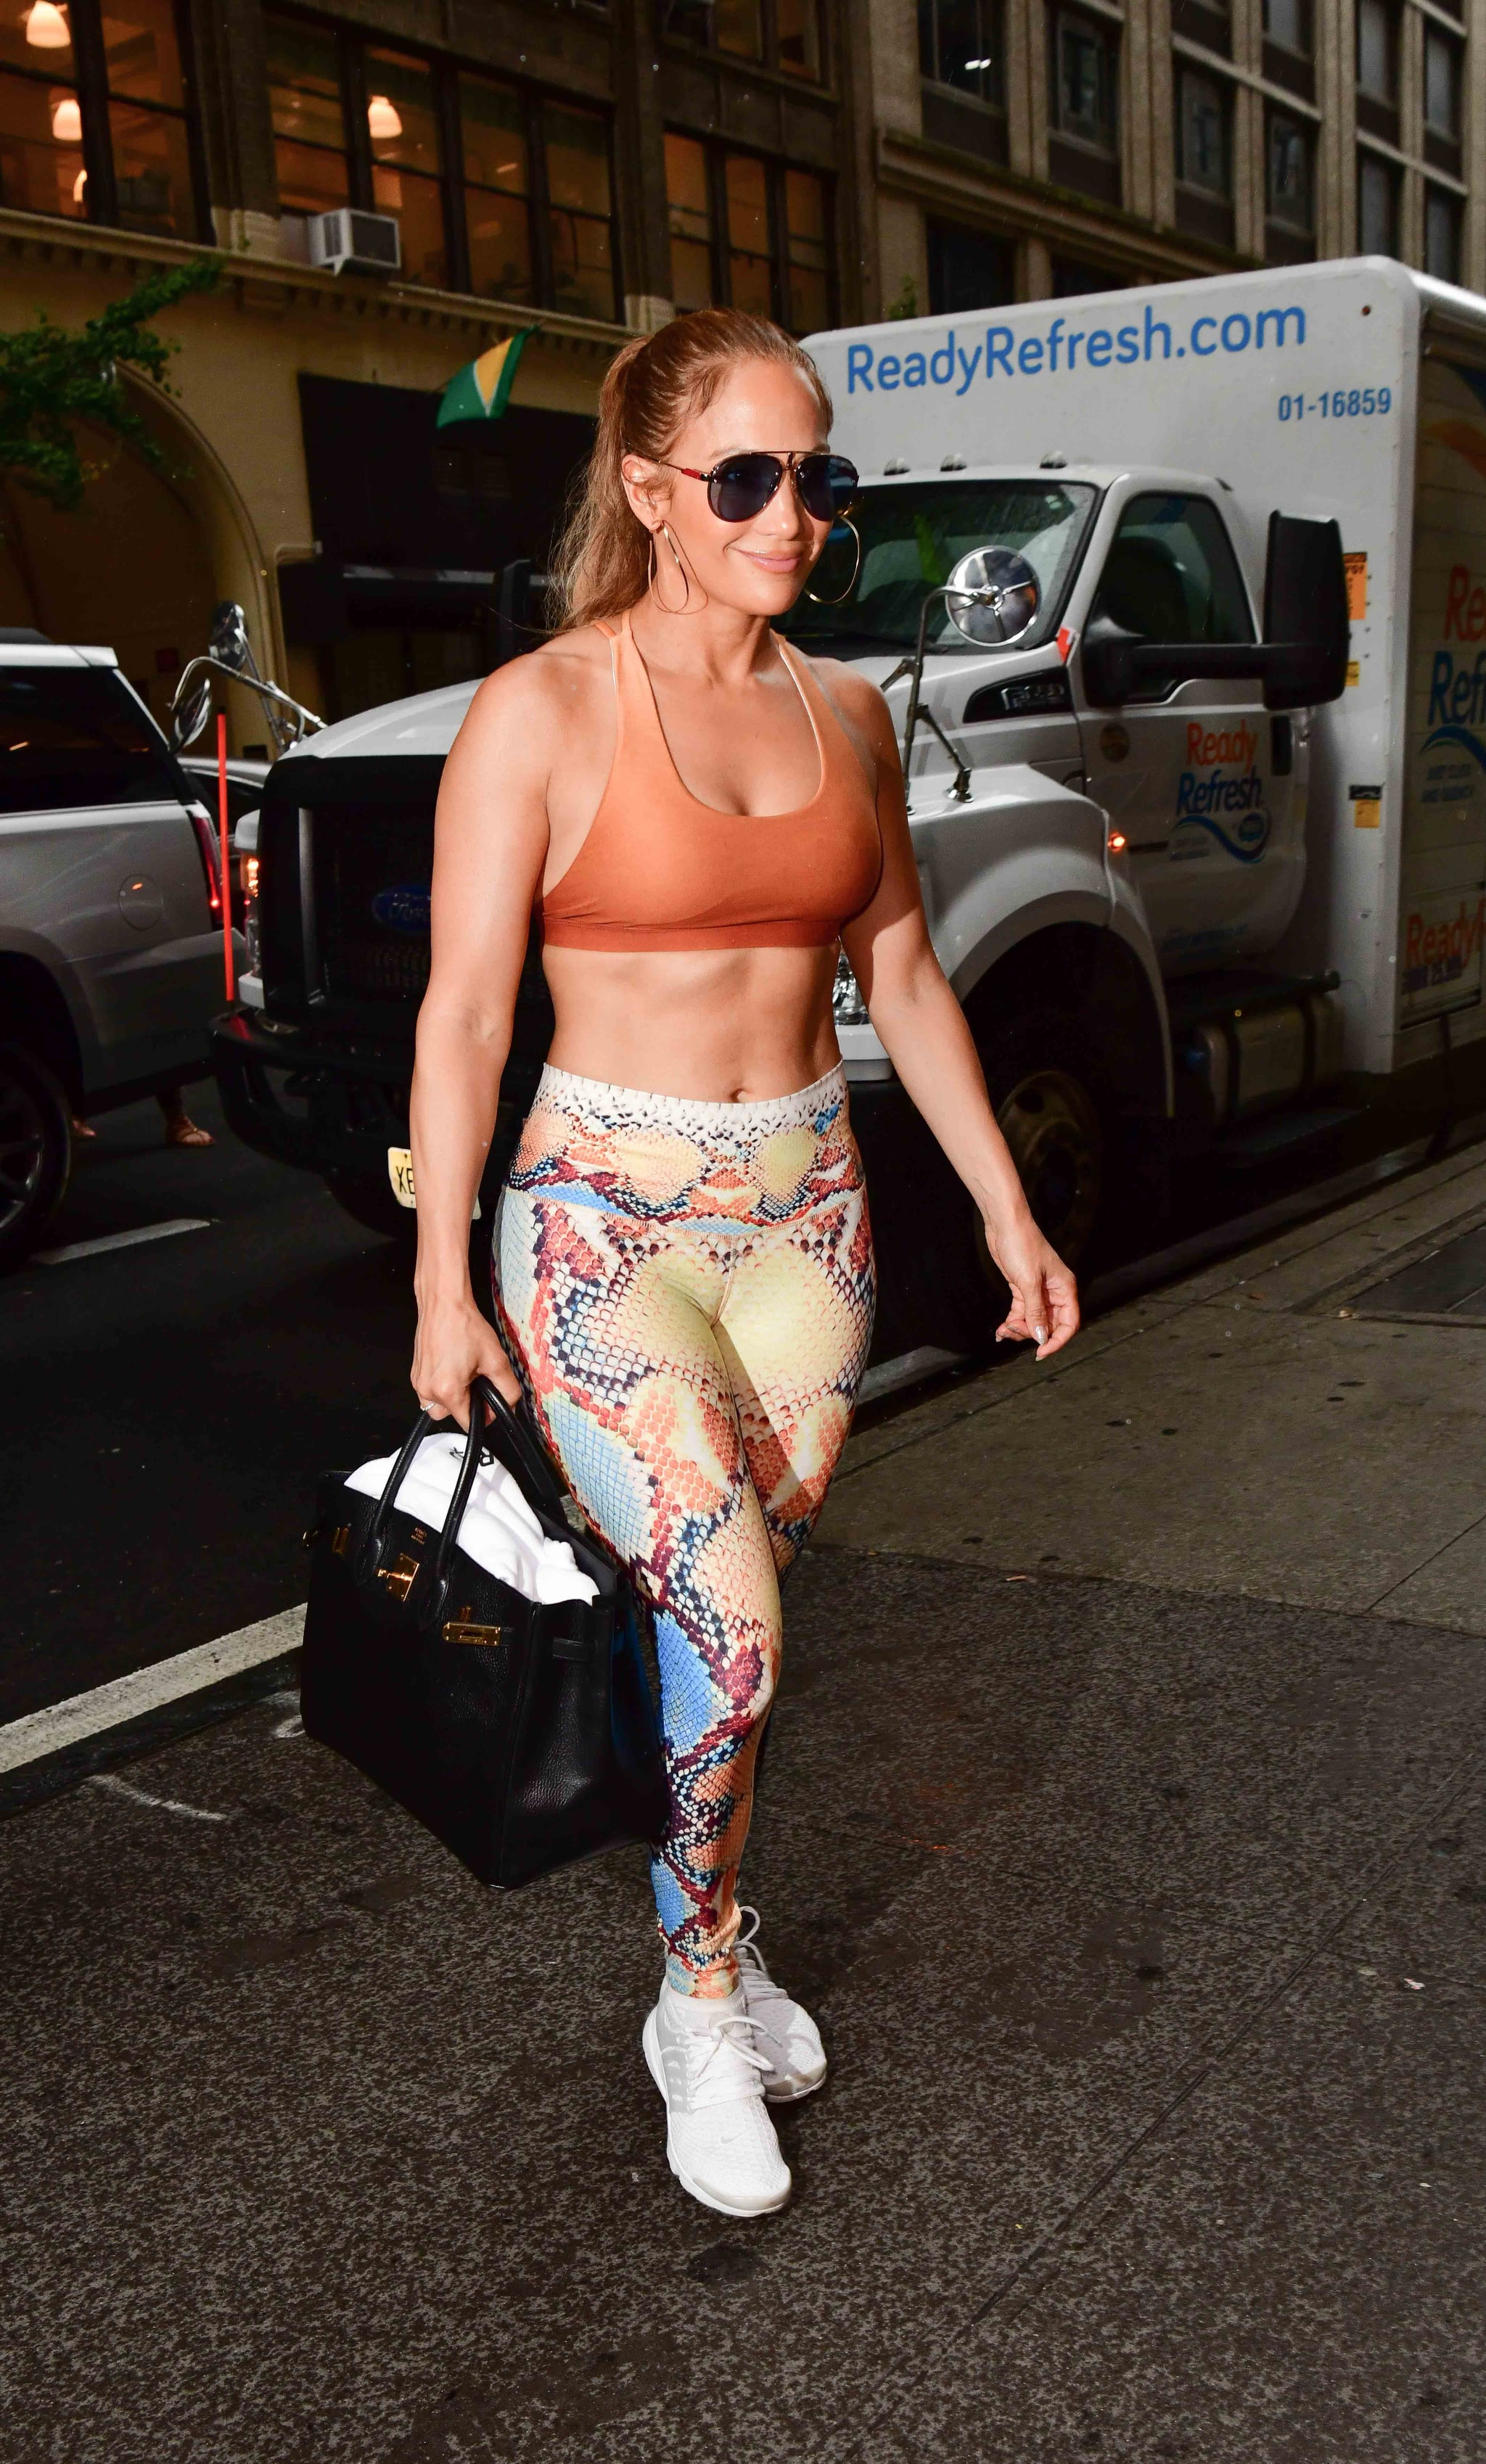 NEW YORK, NY - AUGUST 01:  Jennifer Lopez seen on the streets of Manhattan on August 1, 2018 in New York City.  (Photo by James Devaney/GC Images)